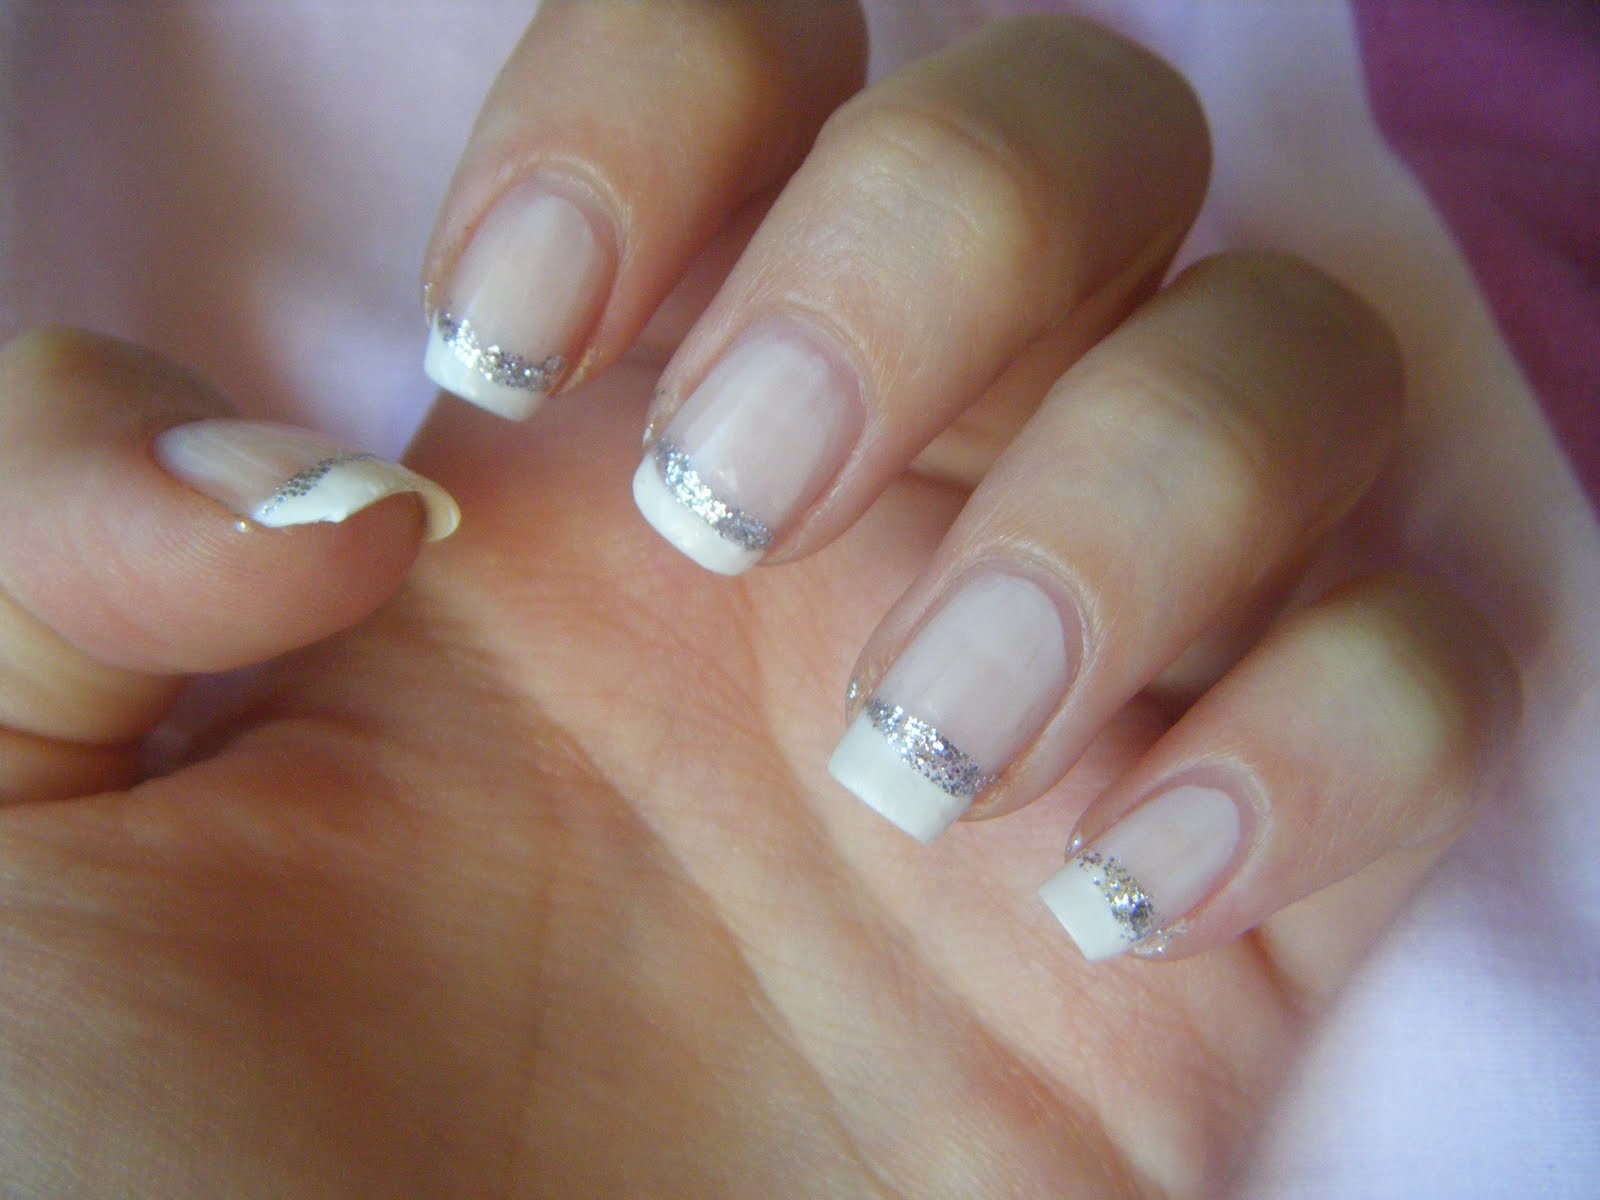 Beauty French Nail Designs - 2015 Best Nails Design Ideas